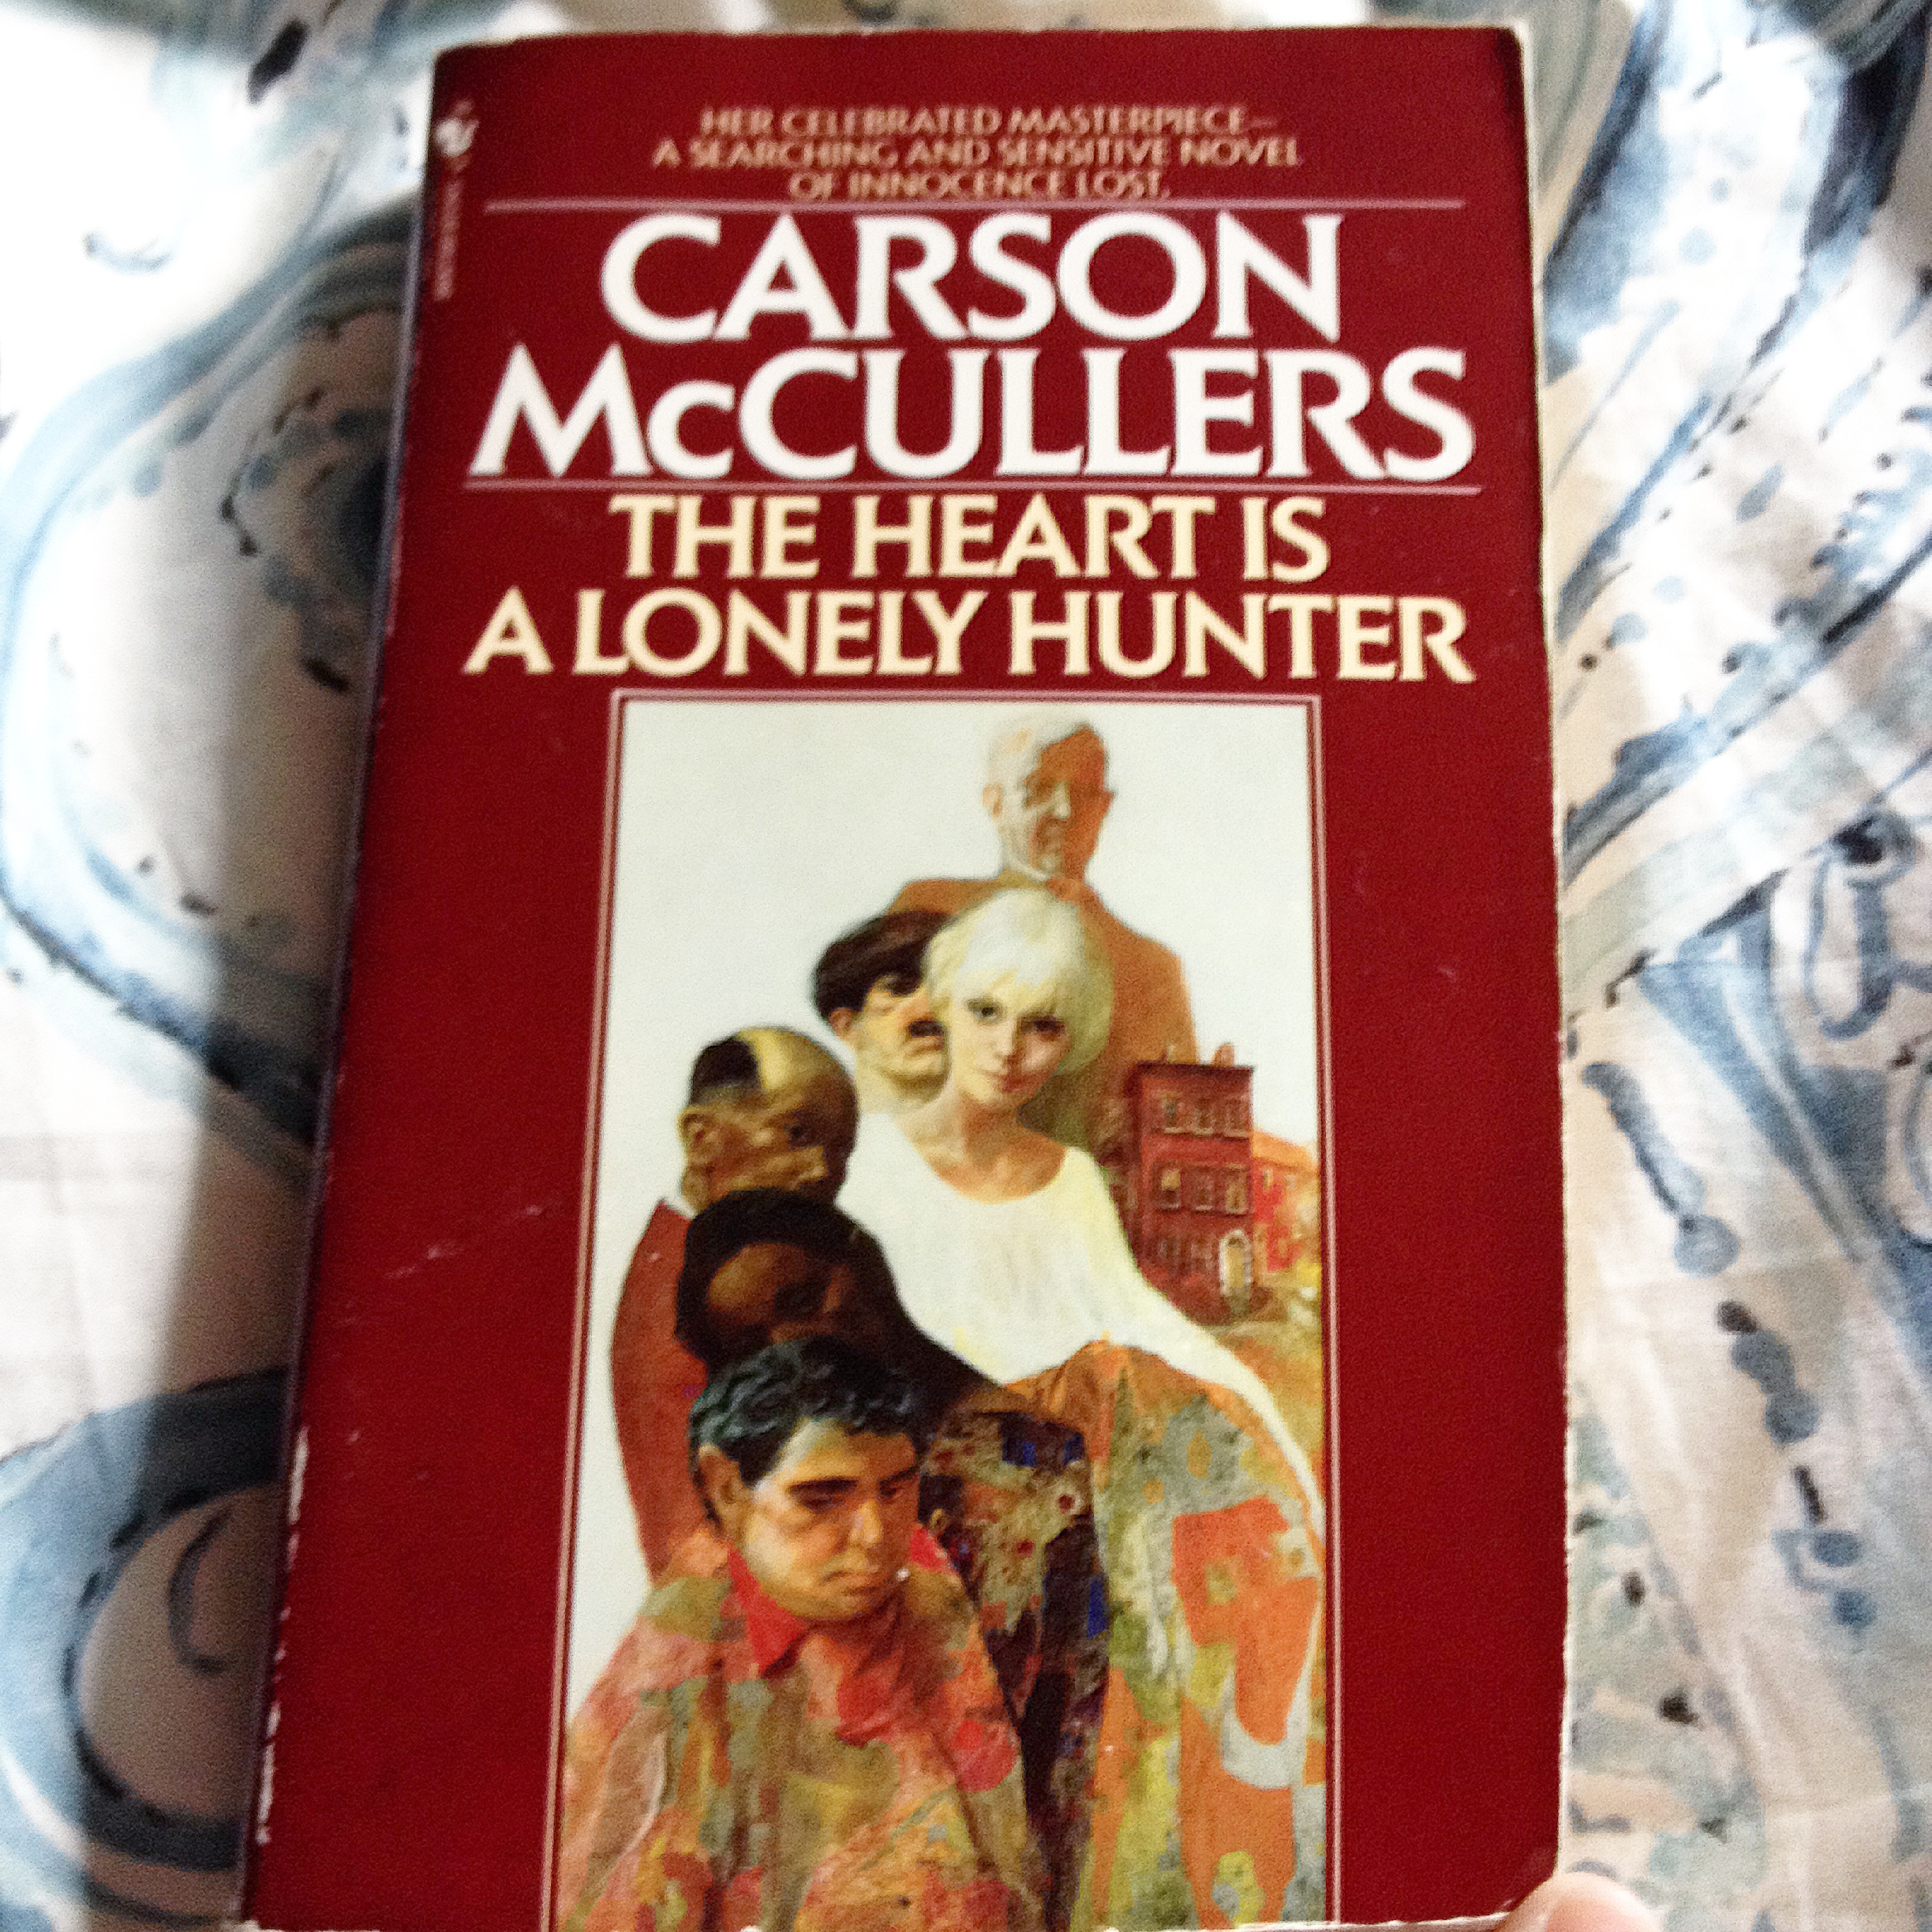 a literary analysis of the jockey by carson mcculler Free summary and analysis of the jockey in carson mccullers's ballad of the sad cafe and other stories that won't make you snore we promise.